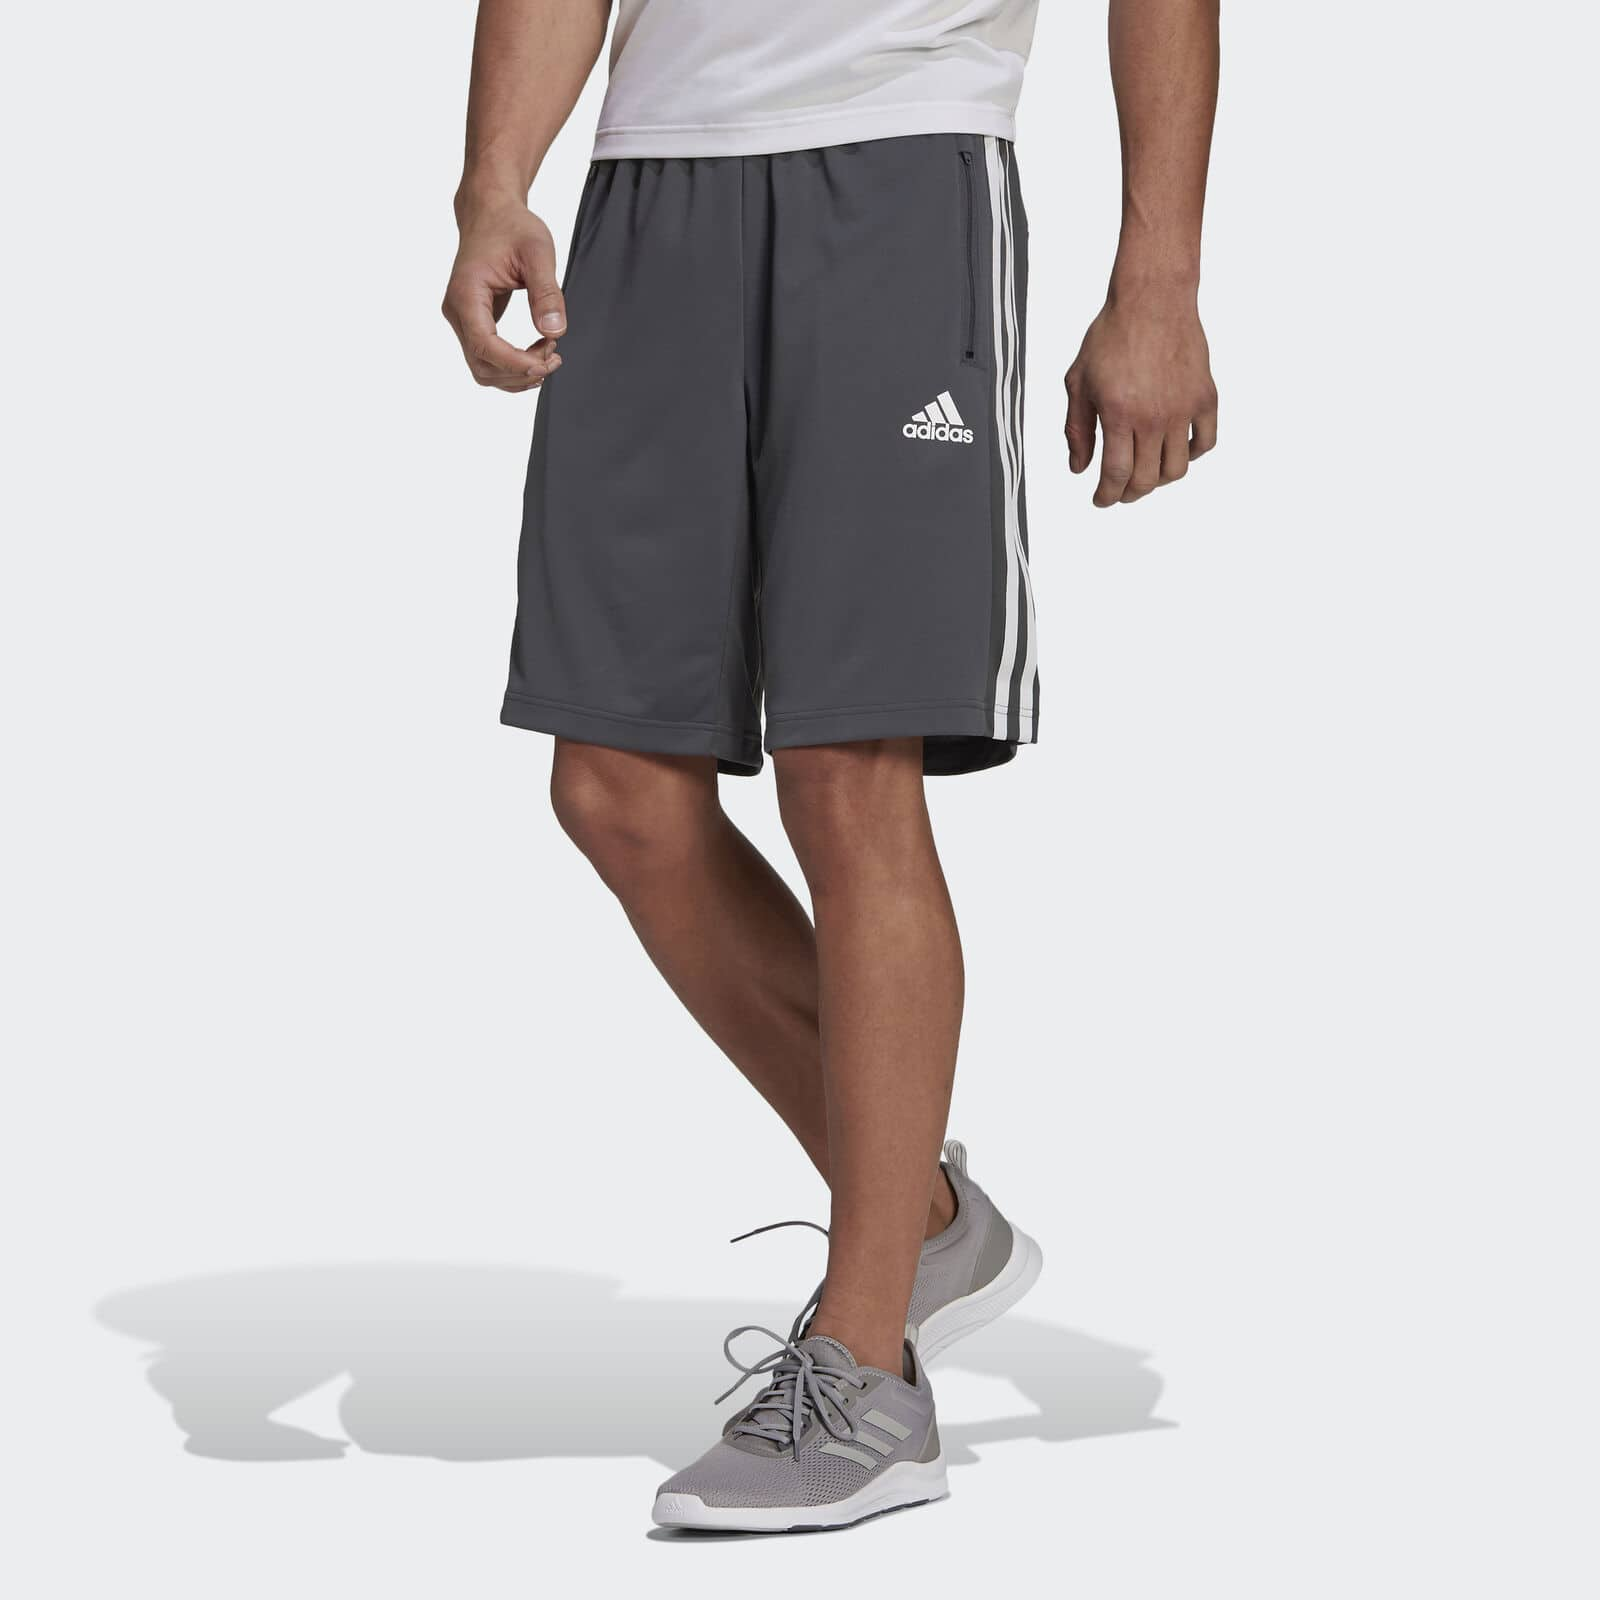 adidas Men's Designed 2 Move 3-Stripes Primeblue Shorts (grey six color, S-2XL) 2 for $22.50 & More + Free S/H